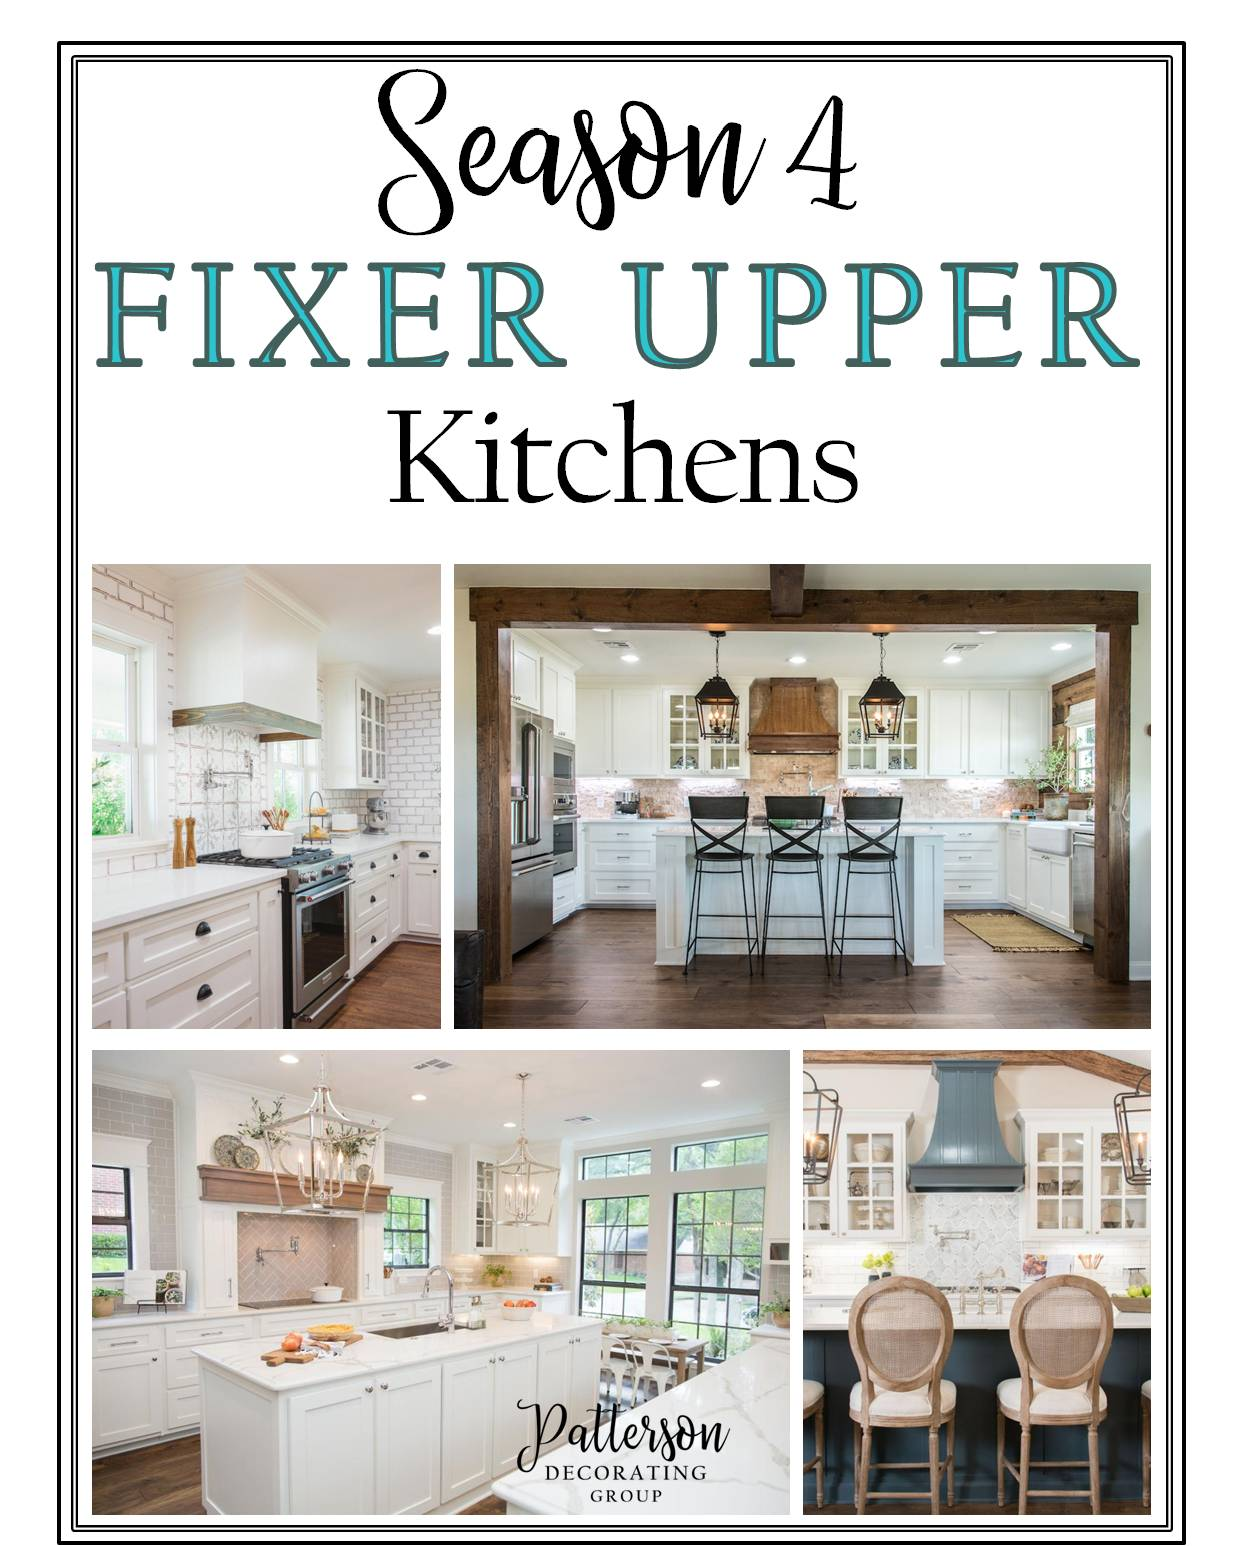 Fixer Upper Country Kitchen: Patterson Decorating